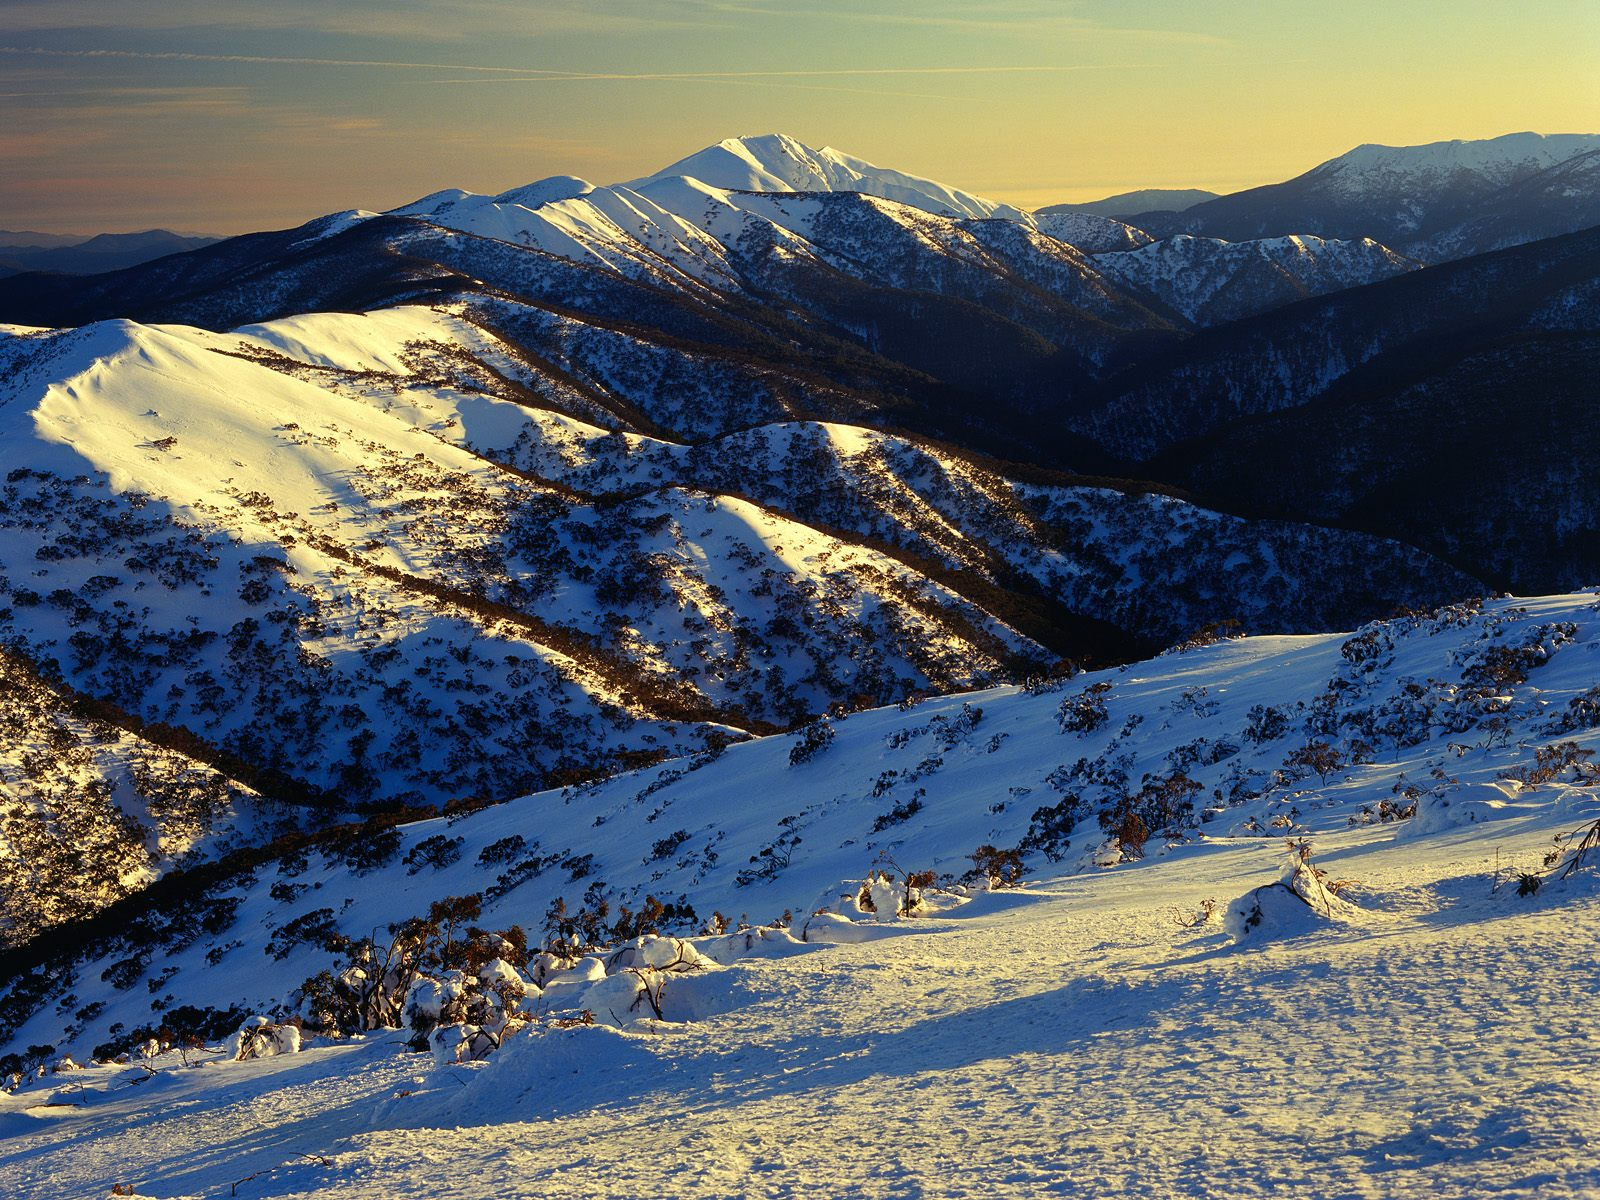 sunrise on mount featherto australia wallpapers - Sunrise on Mount Feathertop Wallpaper Australia World